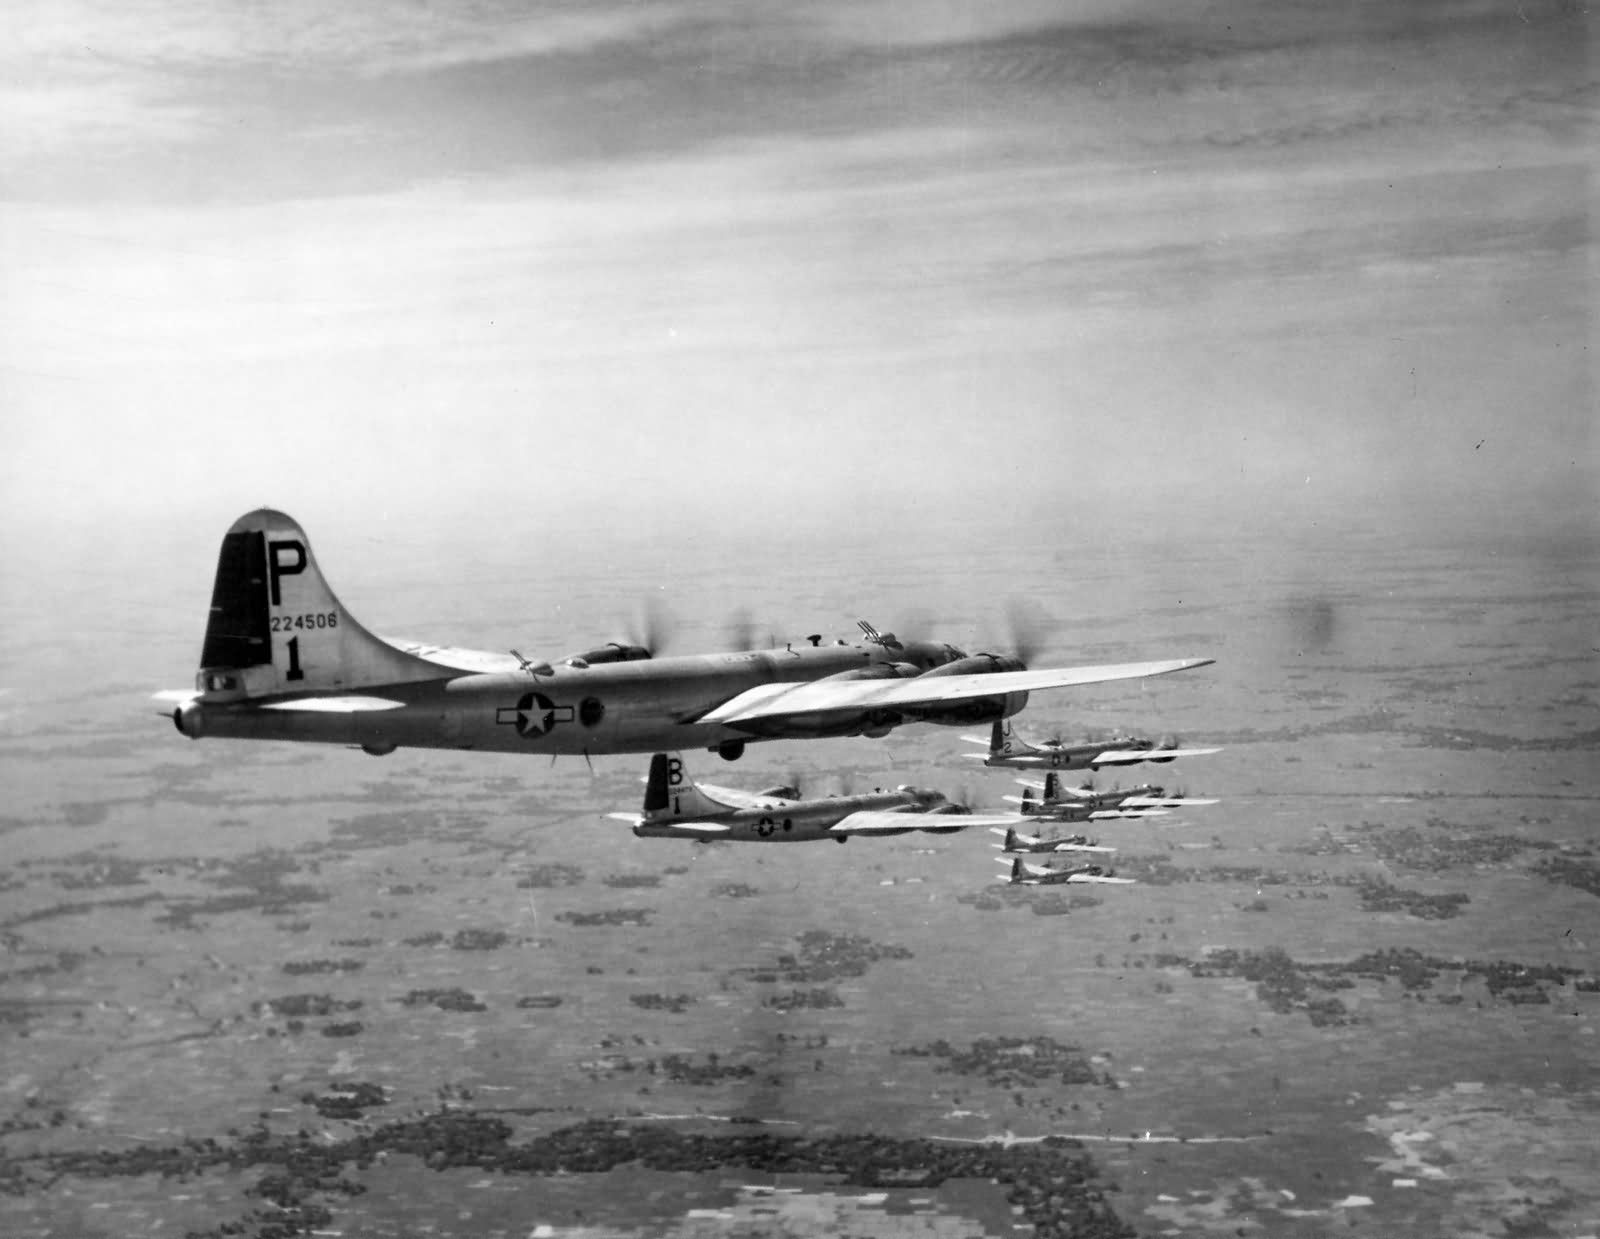 B-29 462nd formation over India in the fall of 1944 42-24506